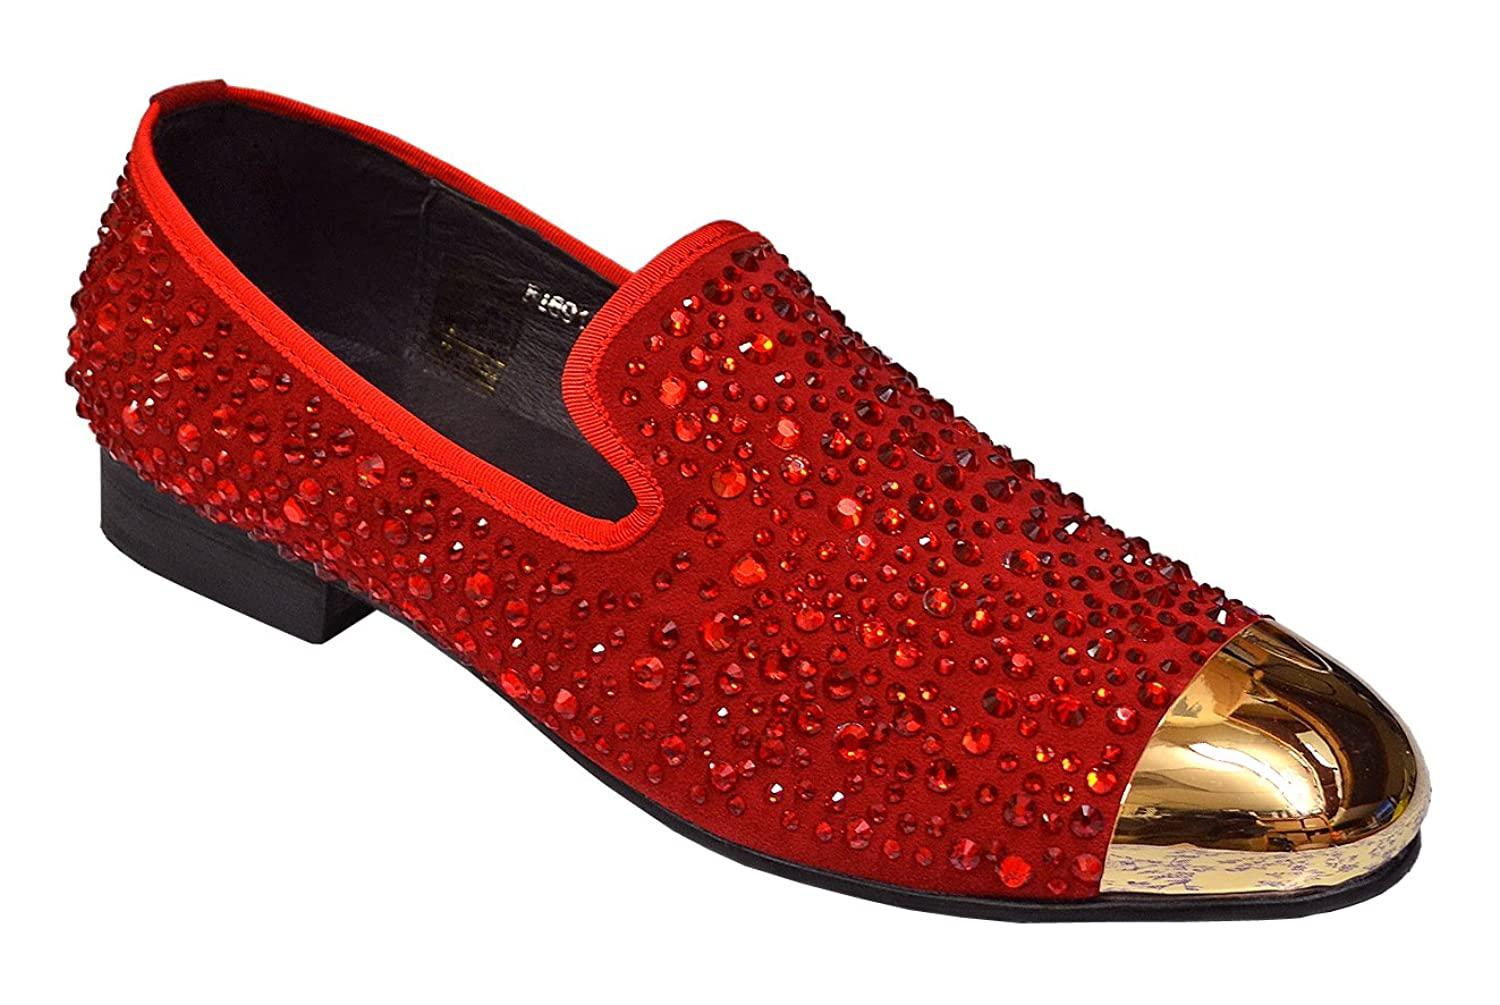 7dc124c65e2 70%OFF Fiesso Men s Crystal Genuine Leather Rhinestones Italian Design Gold  Metal Hardware Loafer Shoes